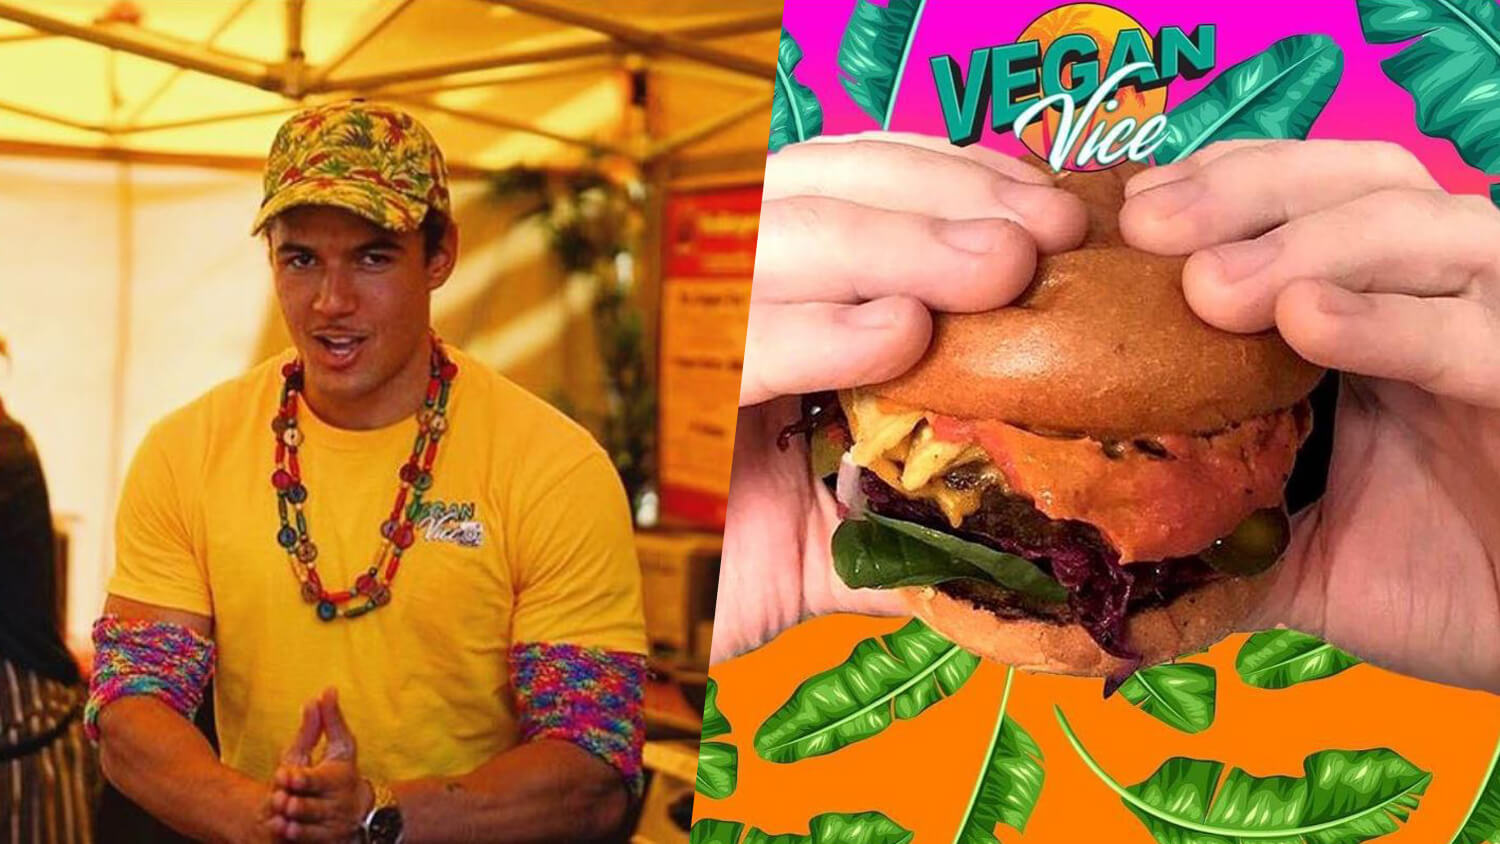 Miami Vice-Themed Restaurant to Serve High-Protein Vegan Burgers in Cambridge Cocktail Lounge Ta Bouche